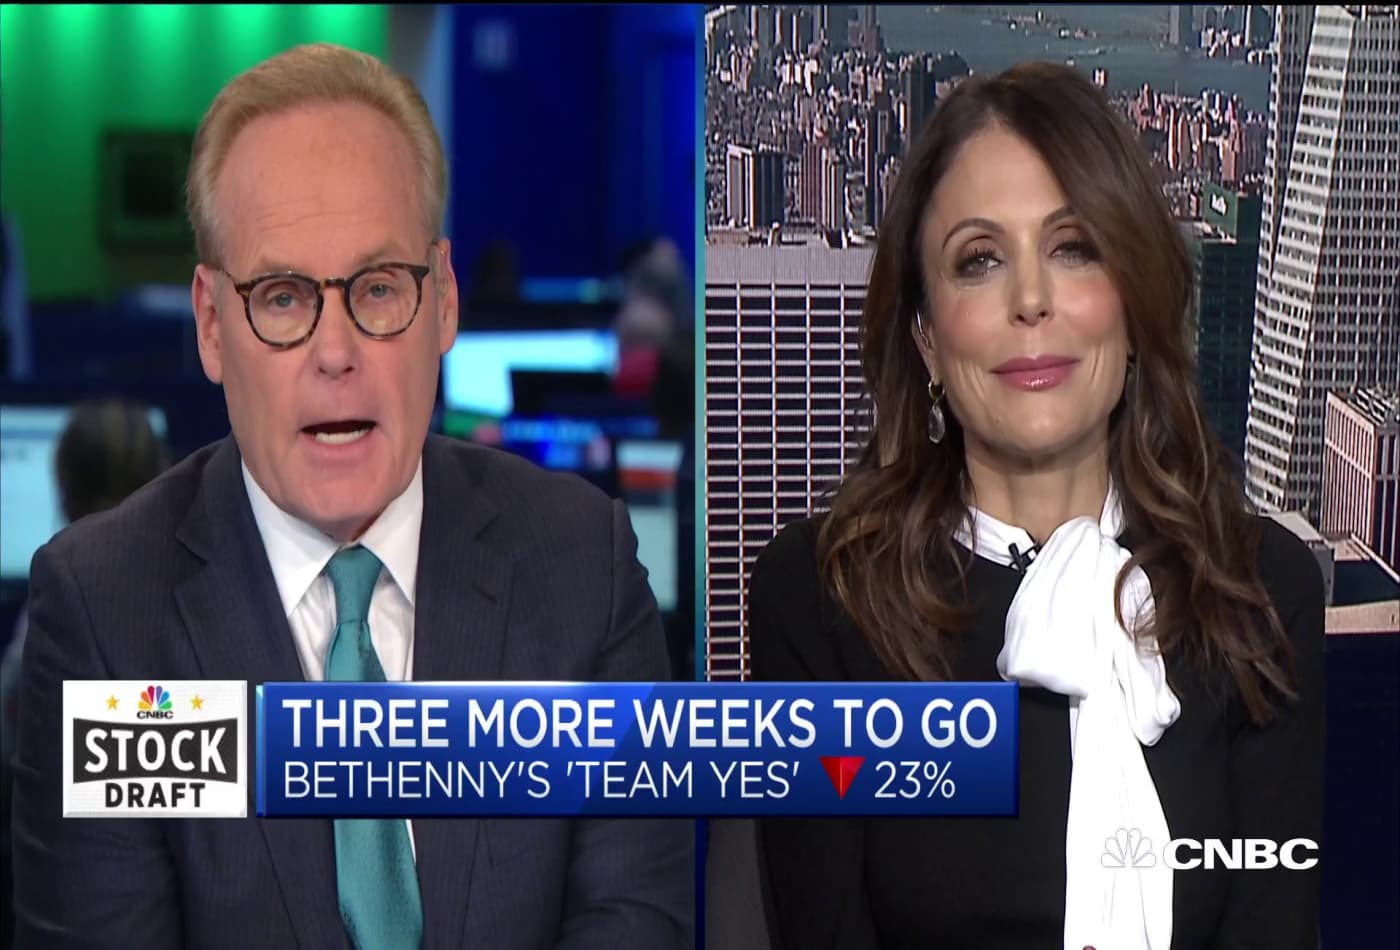 Bethenny Frankel on how her stocks are faring in 2019 CNBC Stock Draft